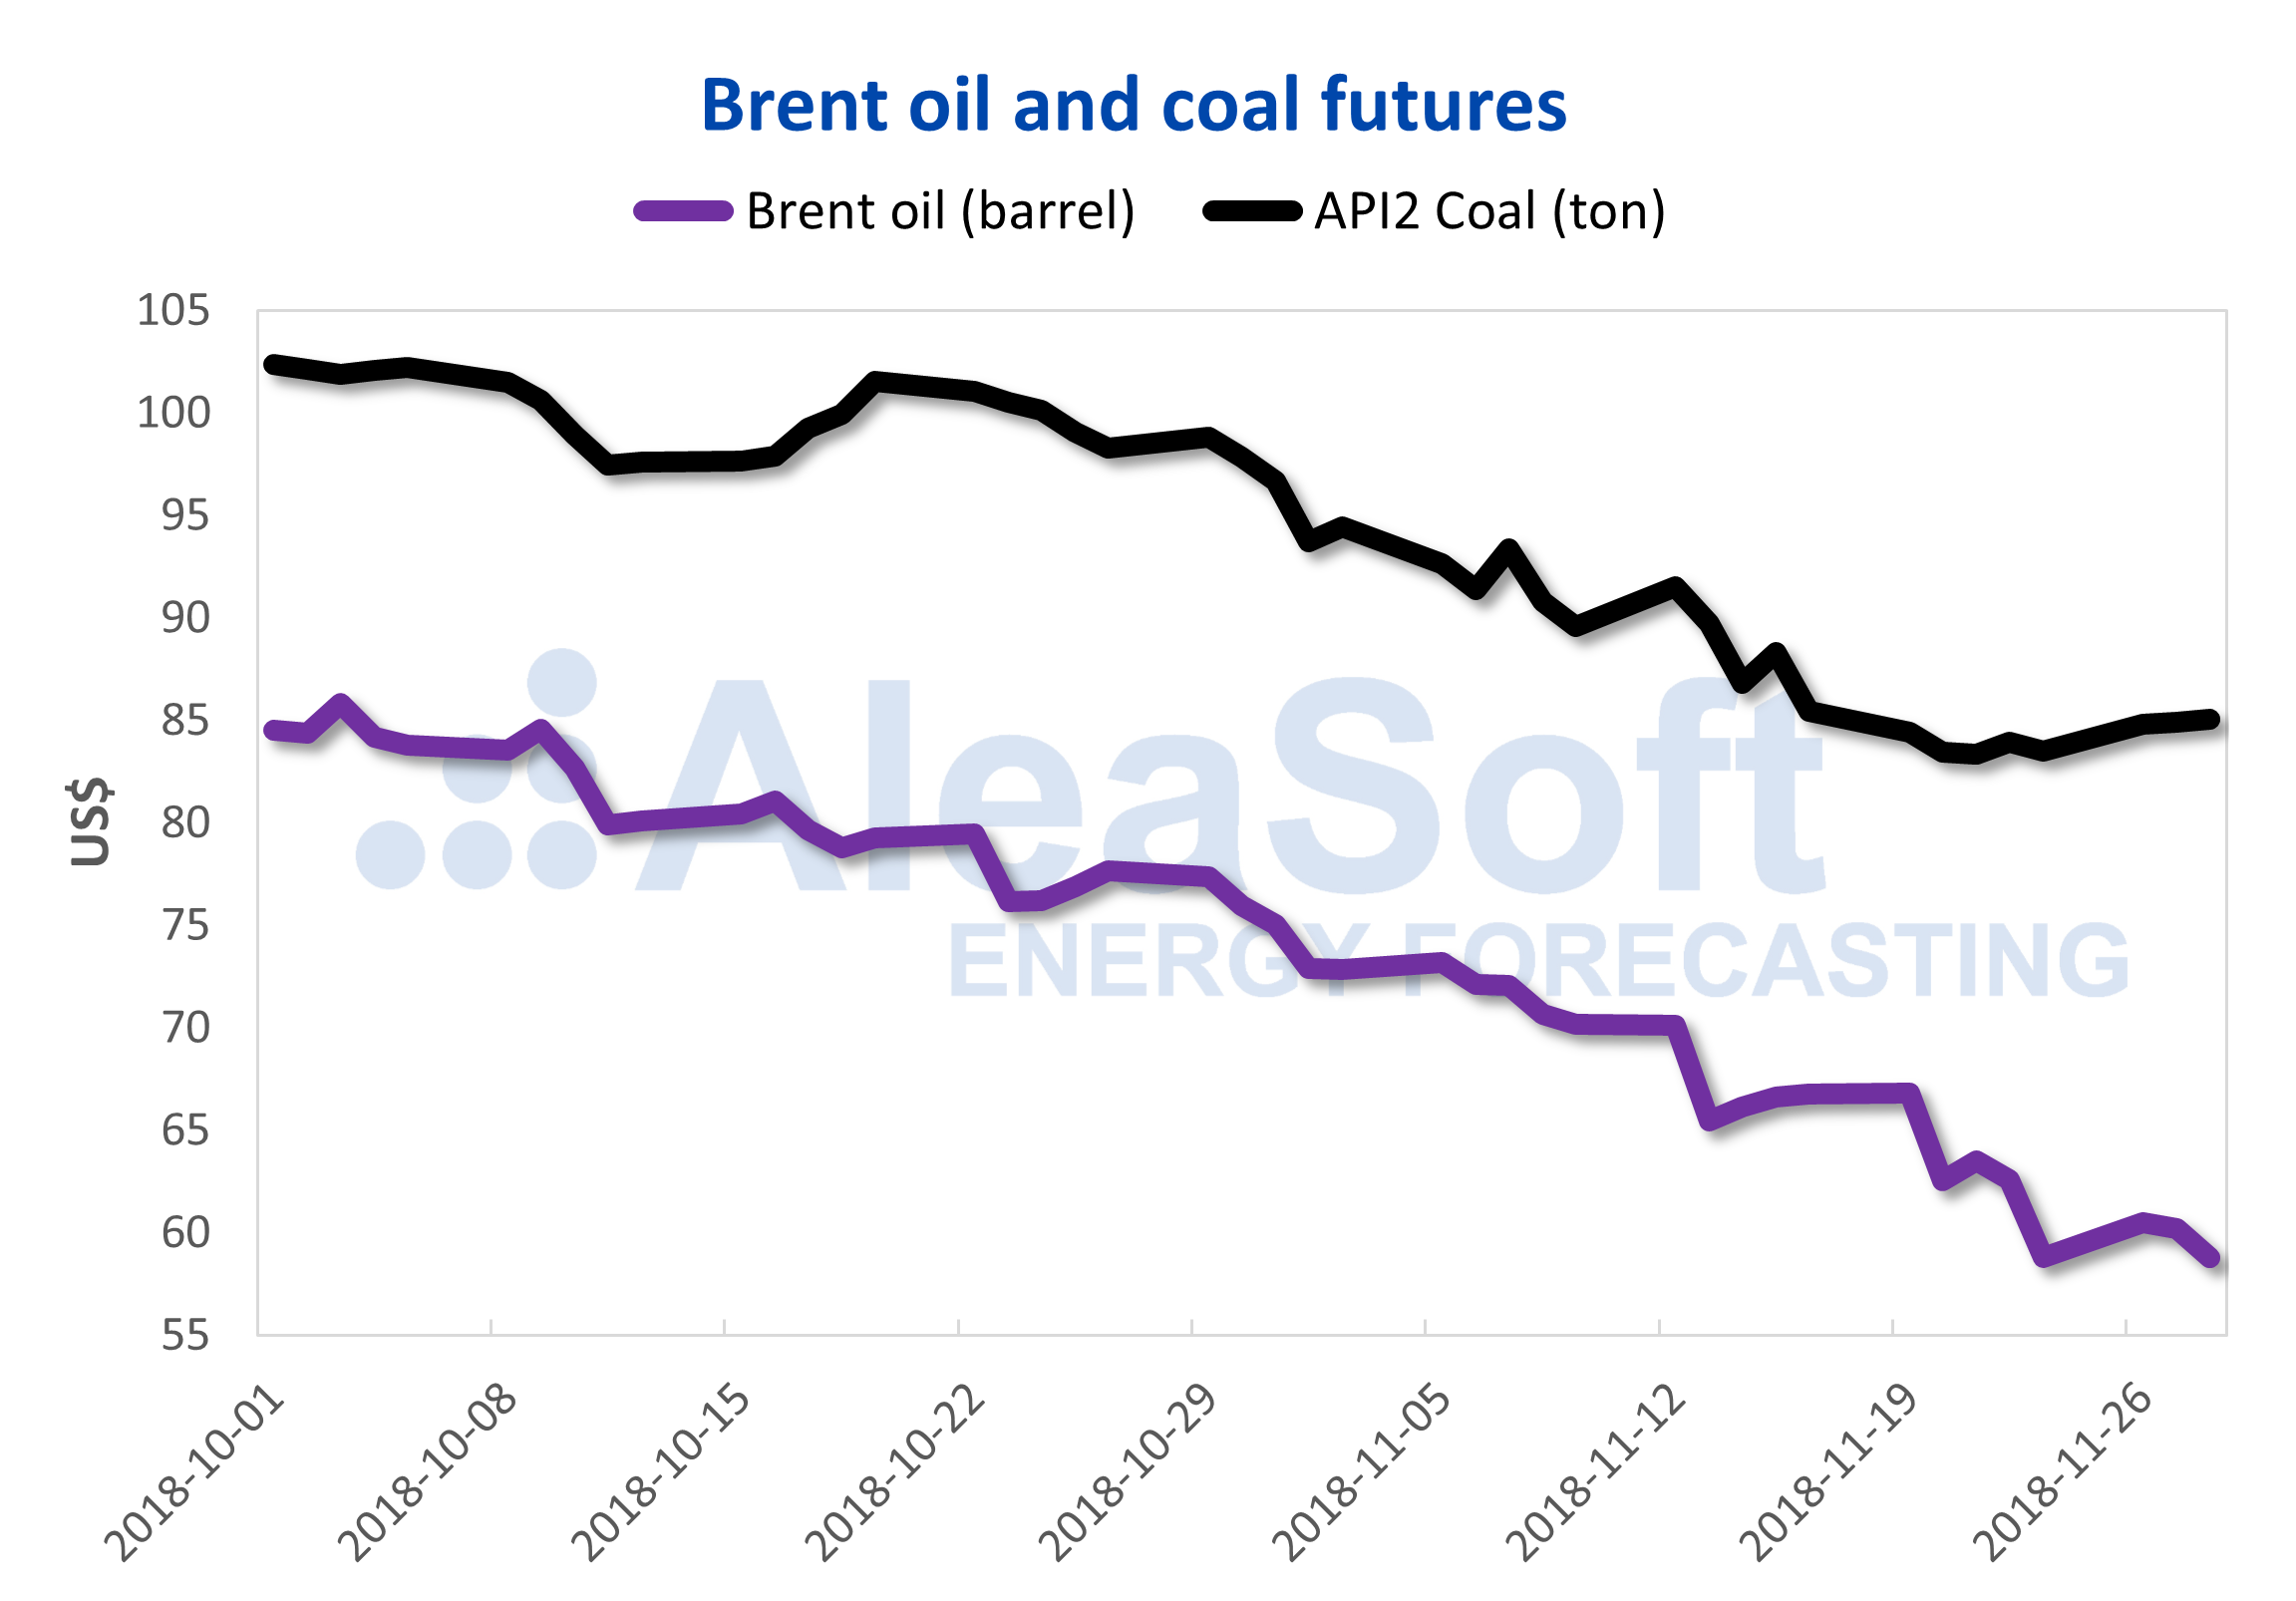 AleaSoft - Prices of futures of Brent and API2 Coil